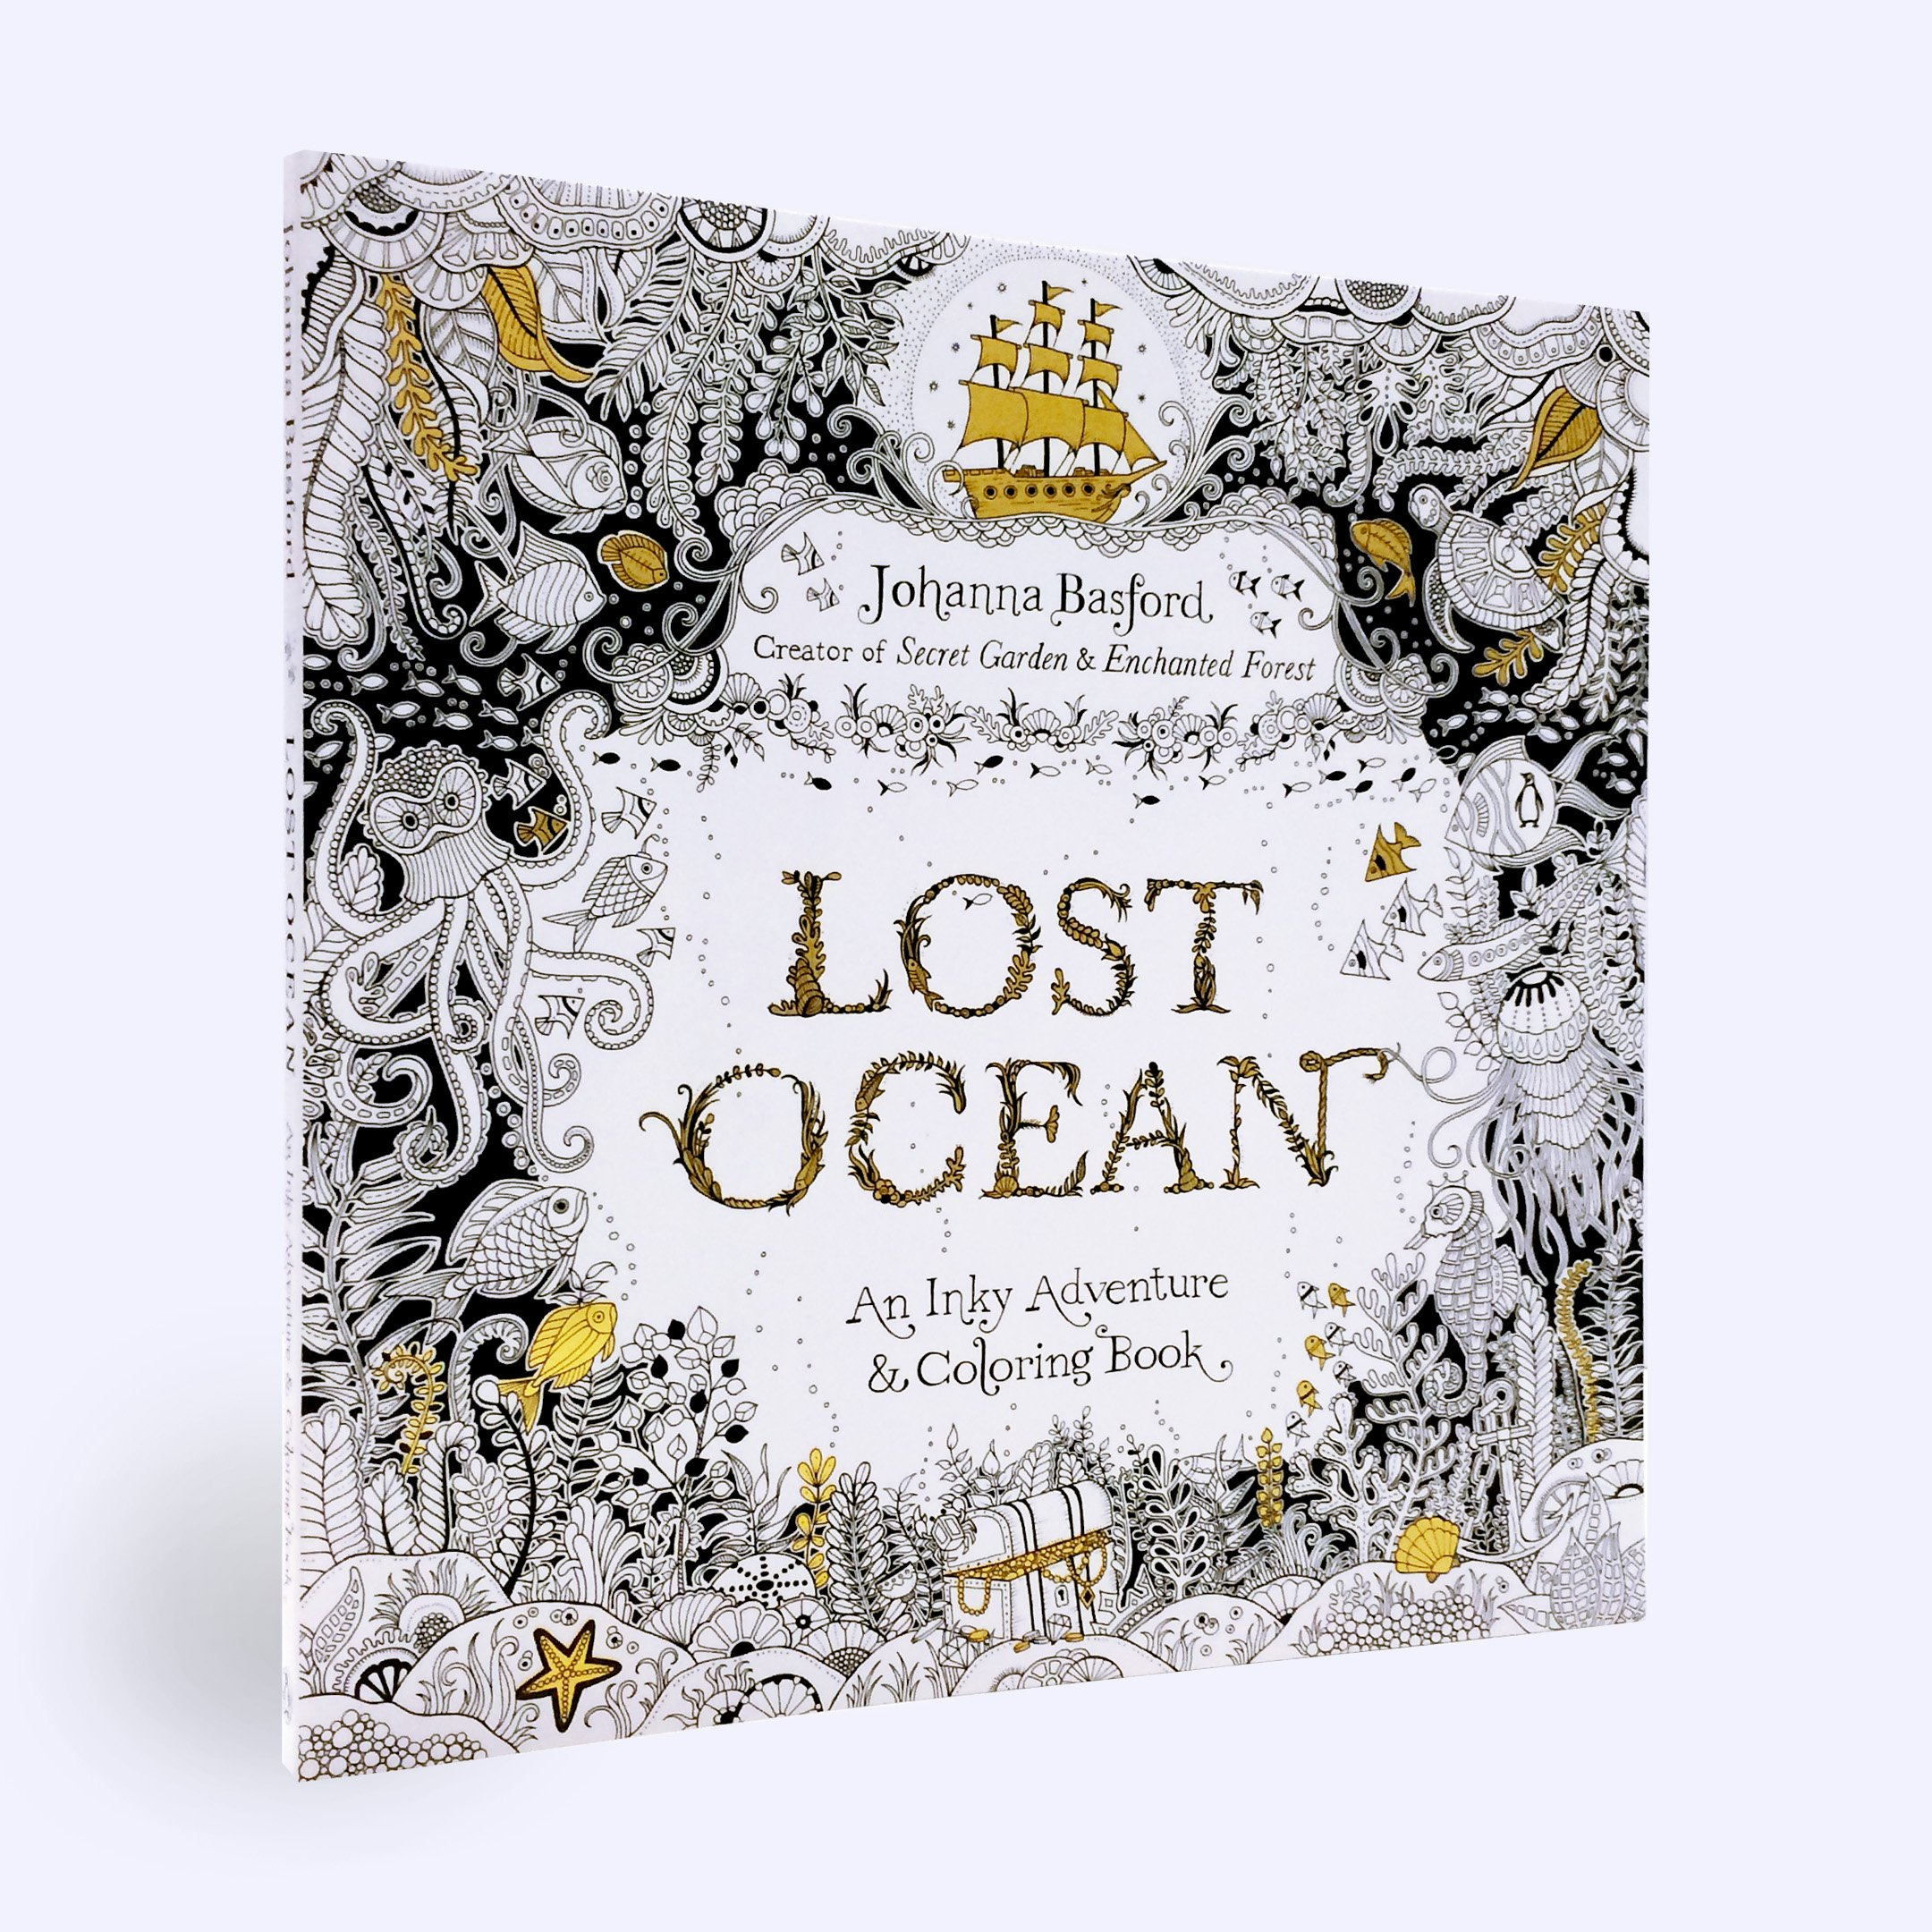 Zen ocean colouring book - Amazon Com Lost Ocean An Inky Adventure And Coloring Book For Adults 9780143108993 Johanna Basford Books